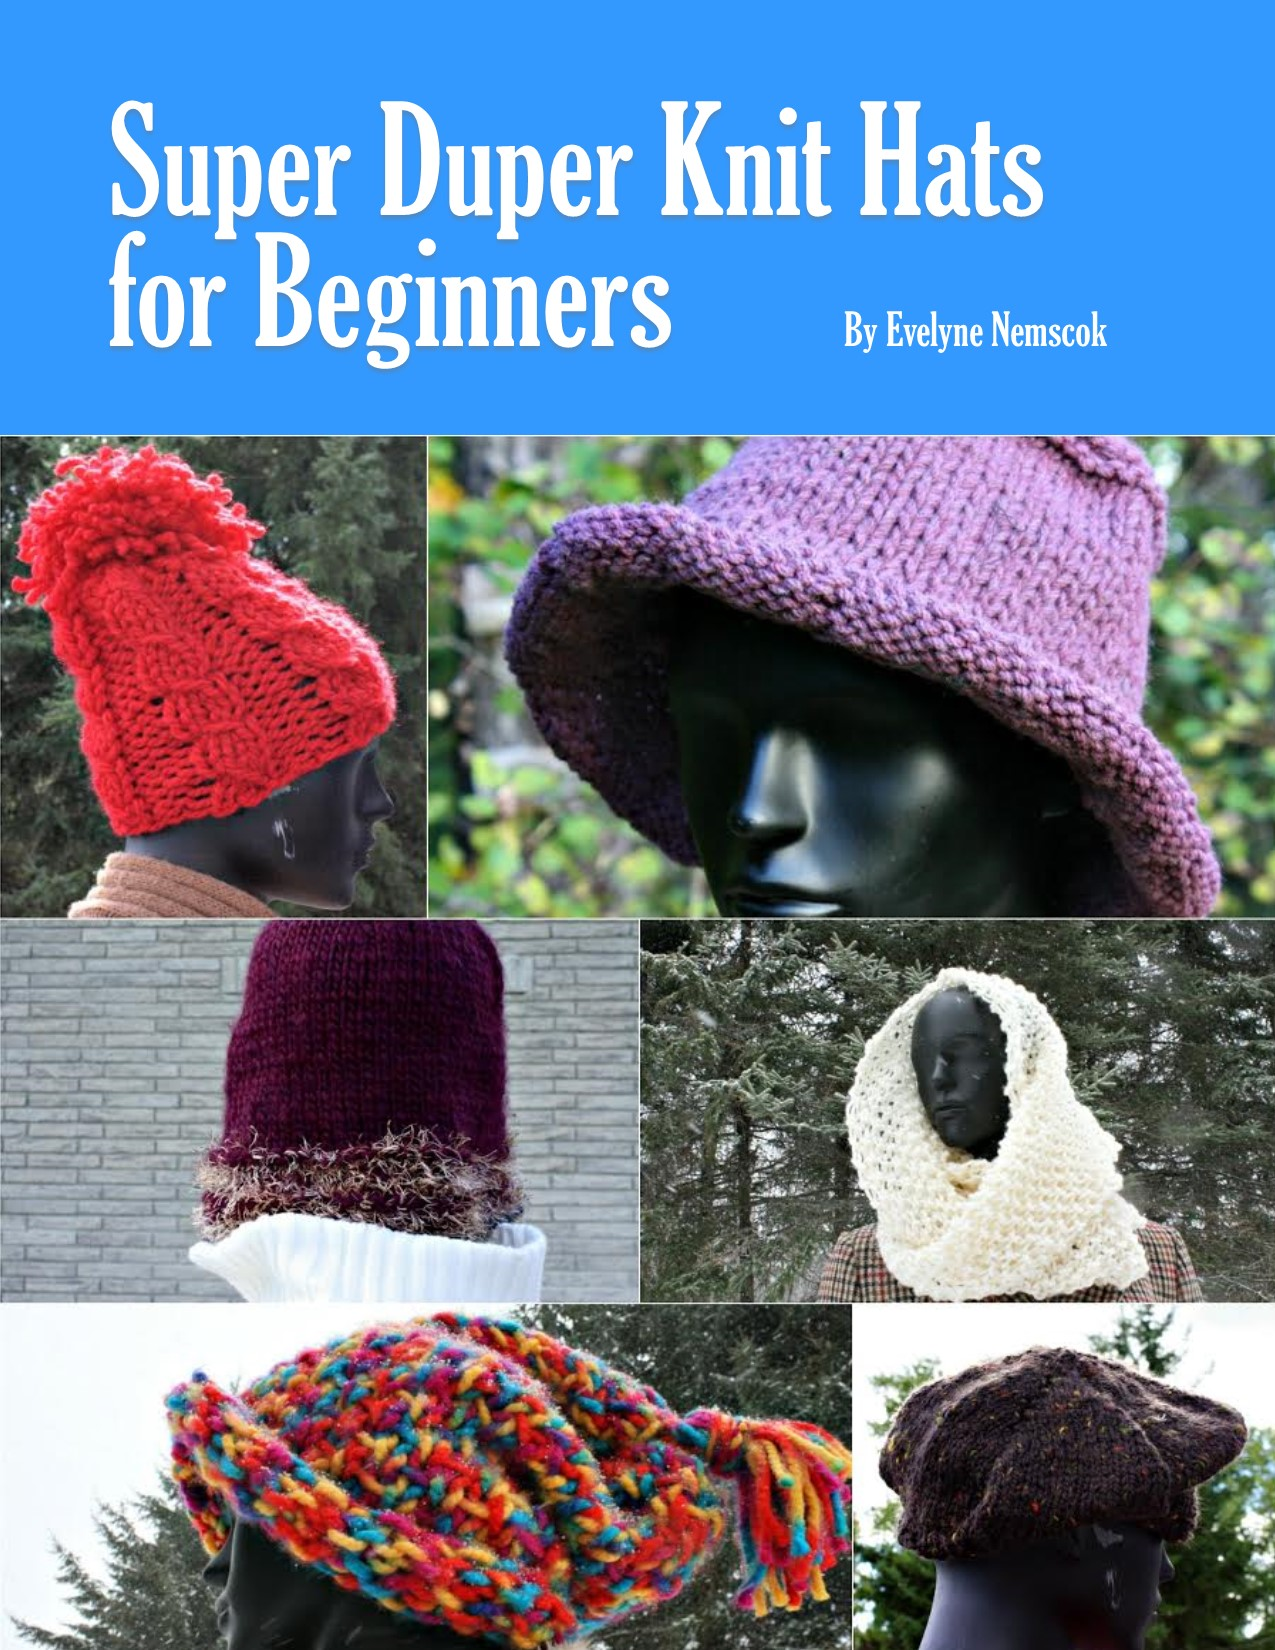 Are you ready to get going on your homemade Christmas gifts?  Check out this ebook of cute Knit Hats-- DaytoDayAdventures.com